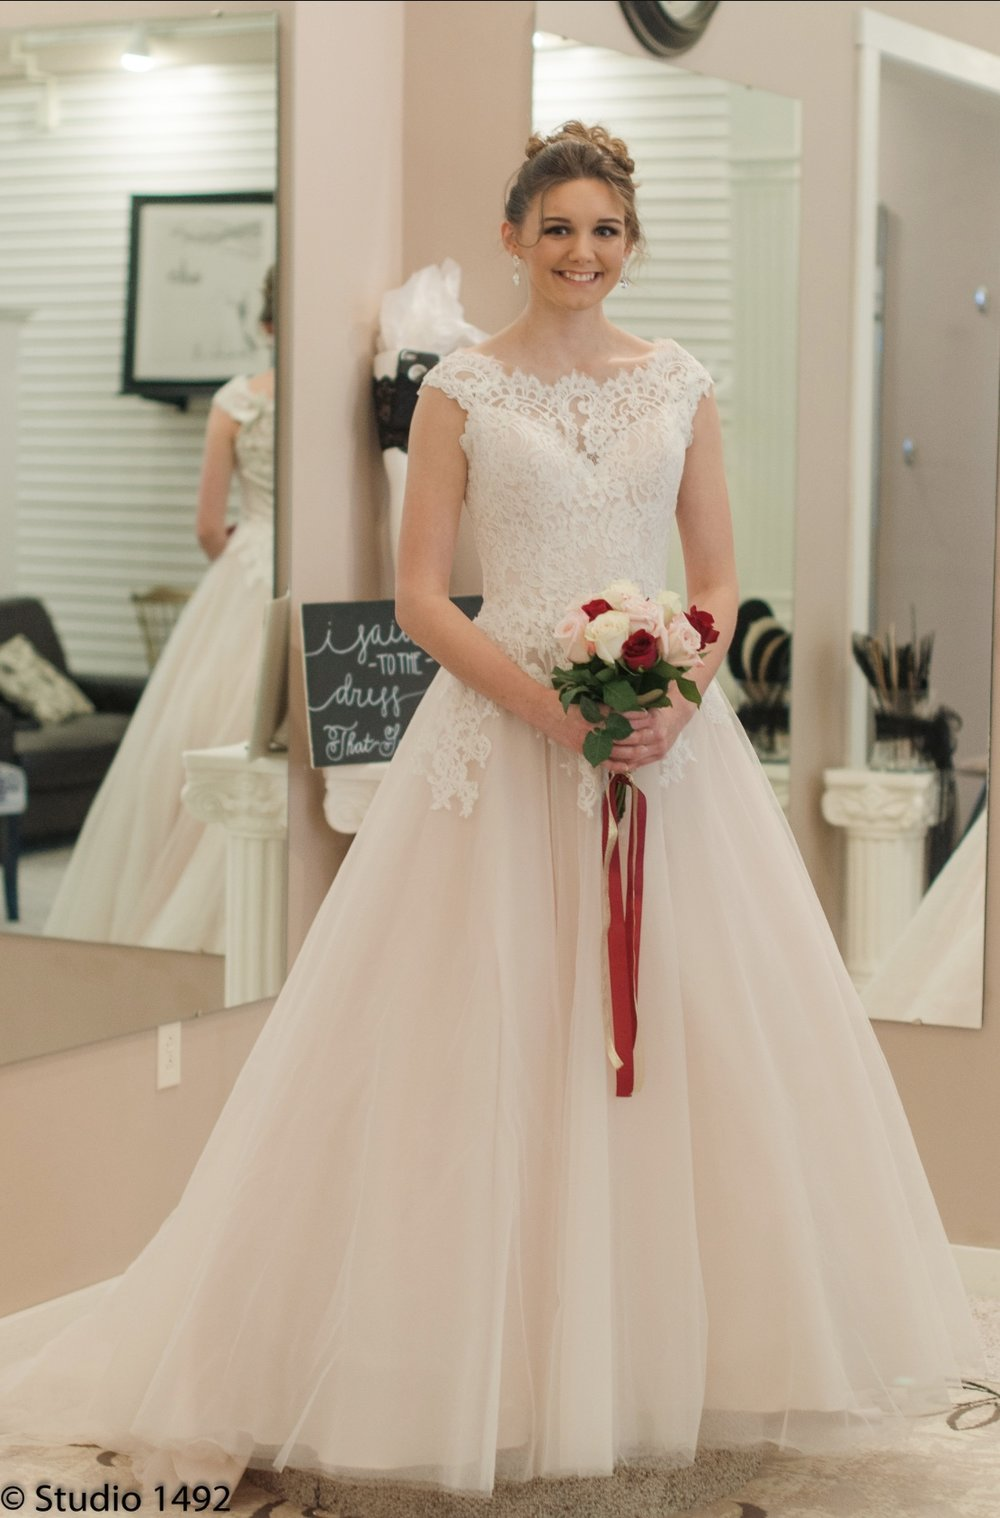 Where Can I Sell My Wedding Dress Locally.Where To Sell My Wedding Dress Locally Raveitsafe